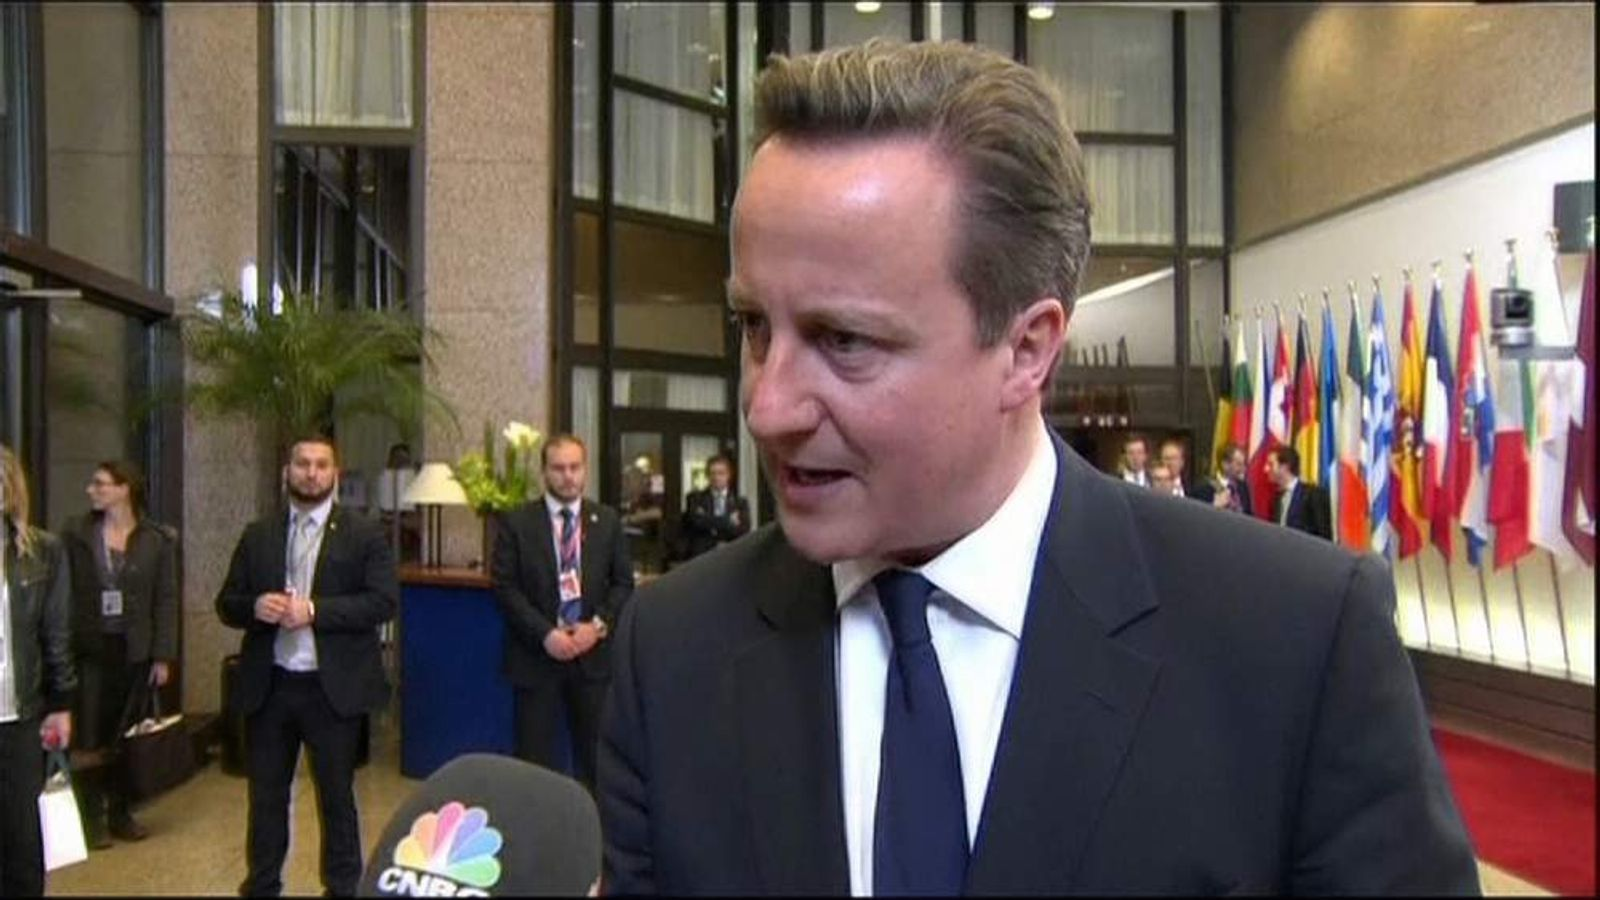 Prime Minister David Cameron after a meeting of EU leaders over Ukraine.